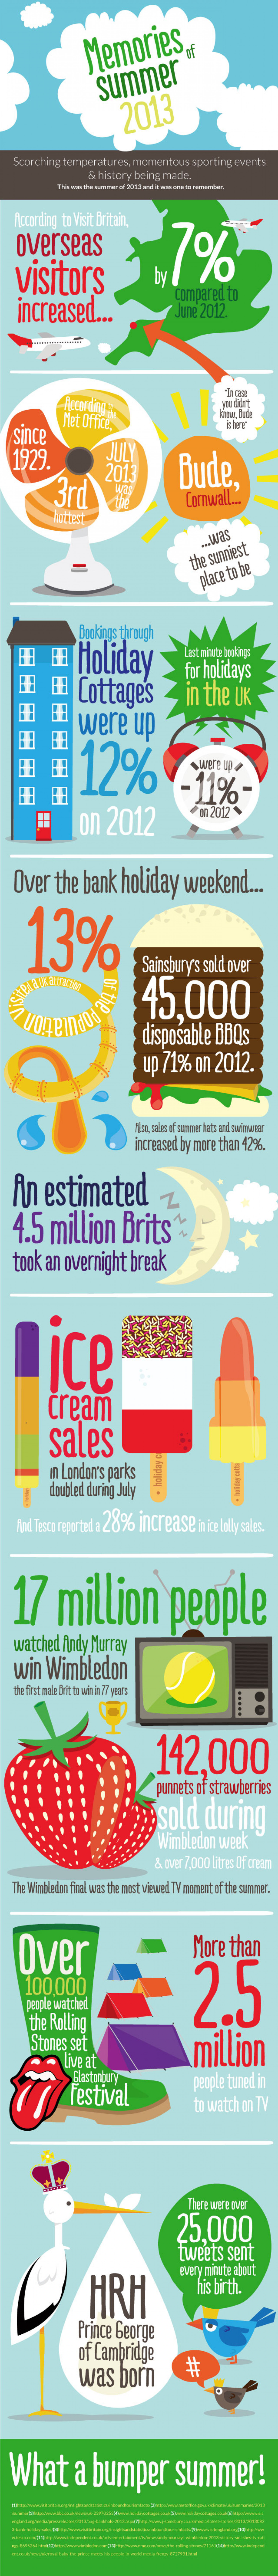 Memories of Summer 2013! Infographic